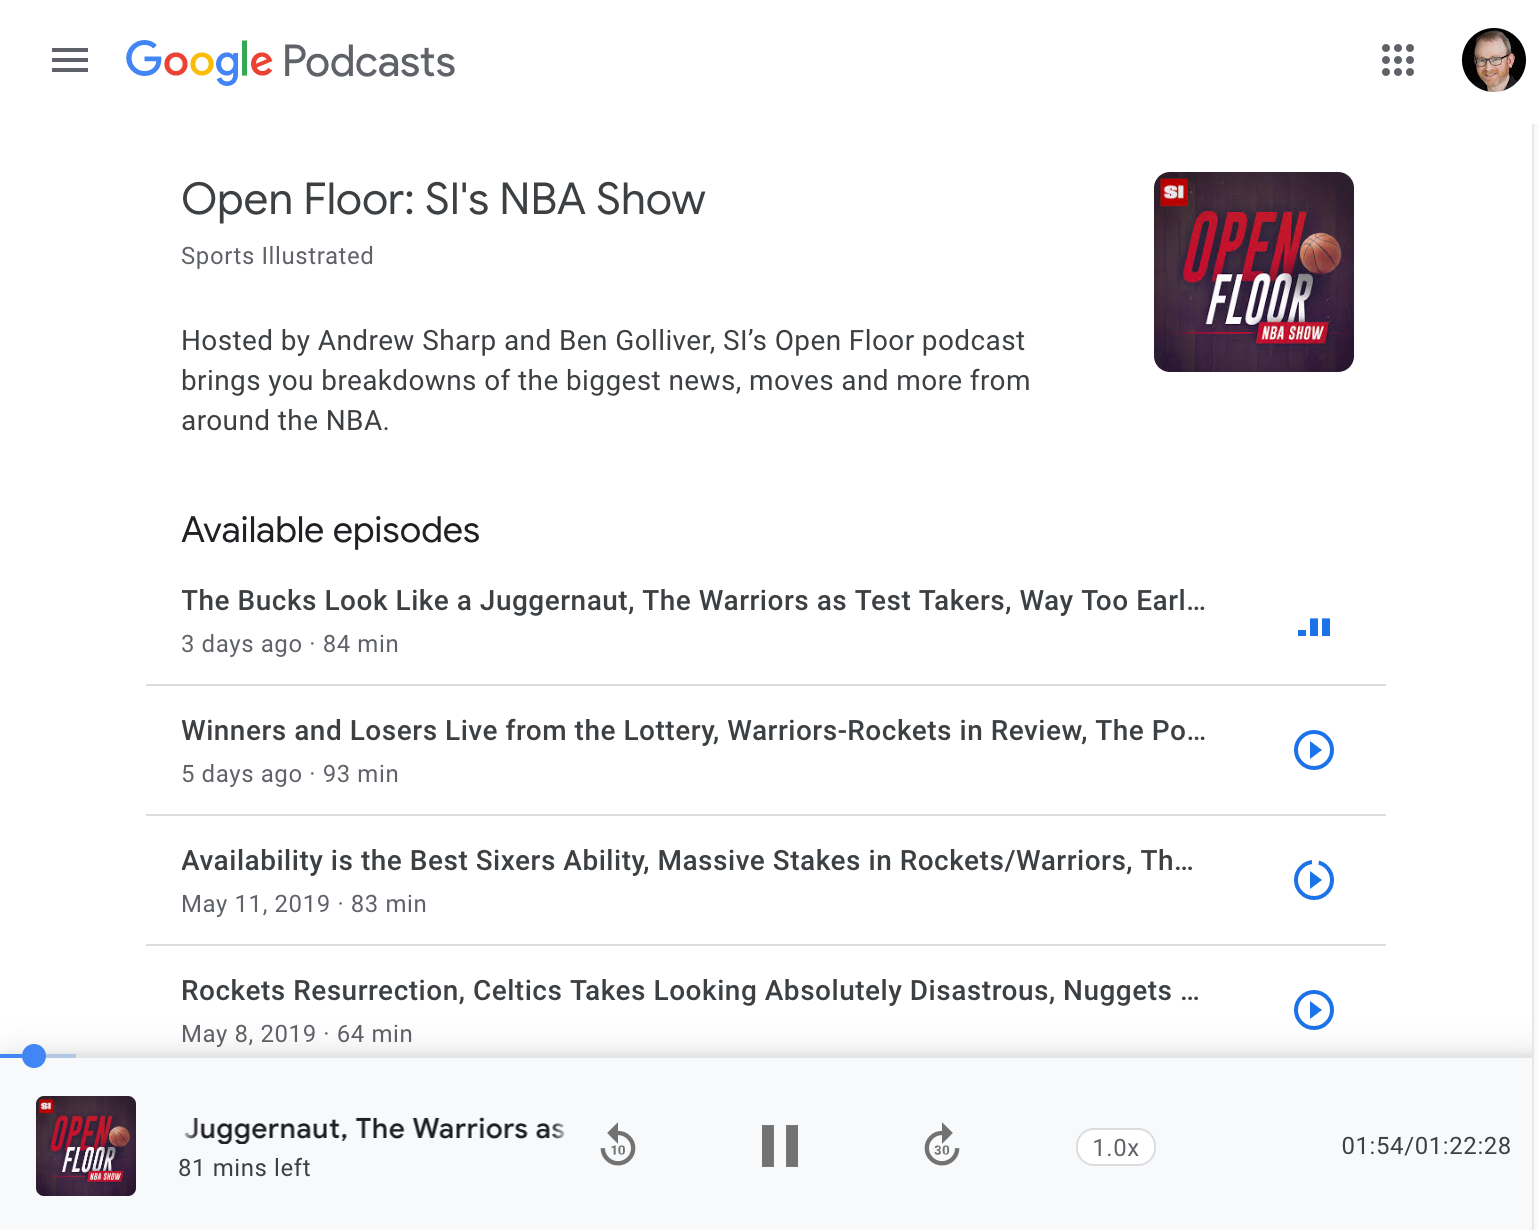 Spotify & Google make moves in podcasting (Cybercultural Daily